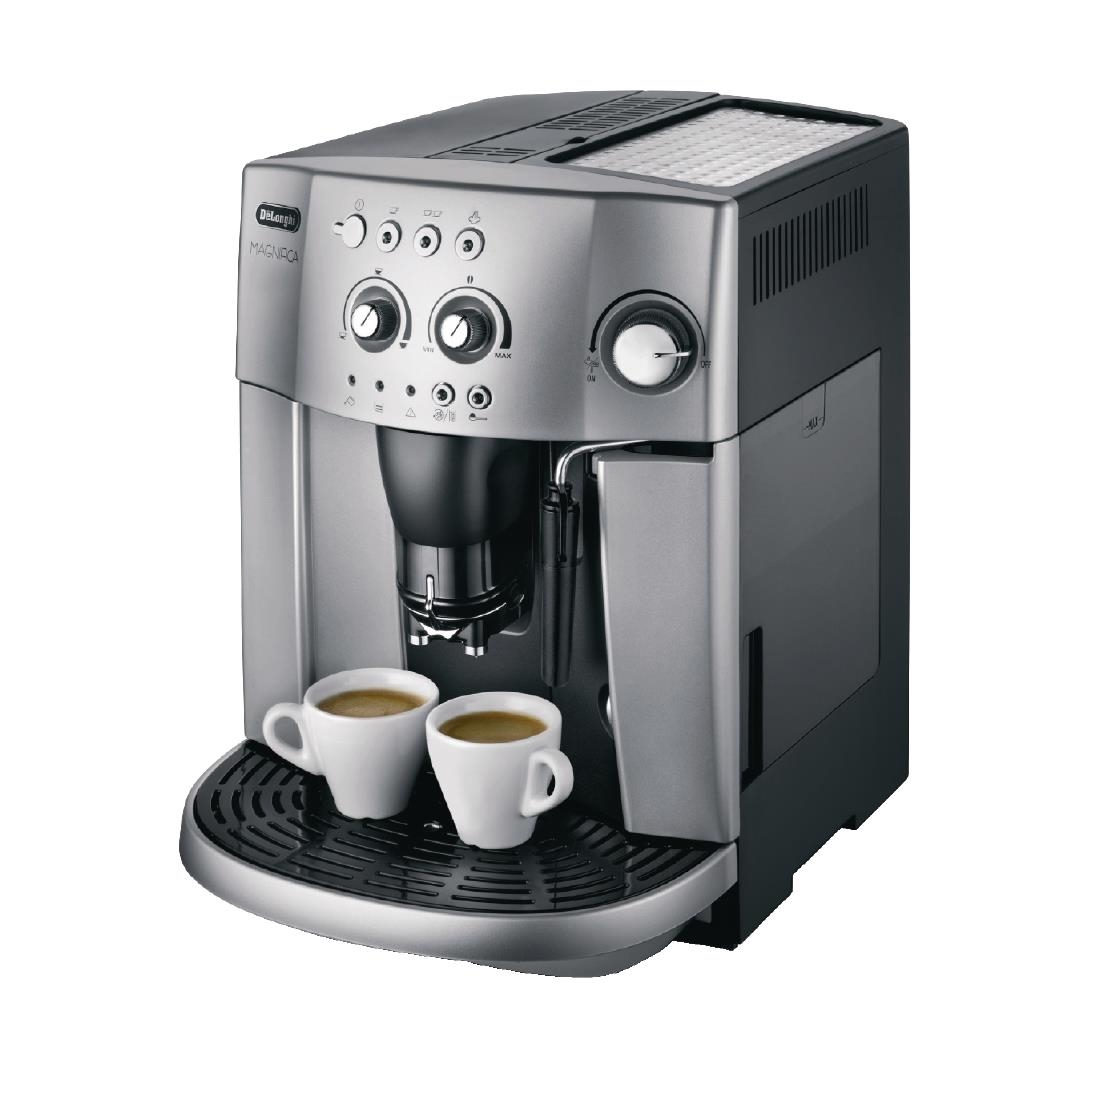 delonghi bean to cup espresso maker 438263. Black Bedroom Furniture Sets. Home Design Ideas